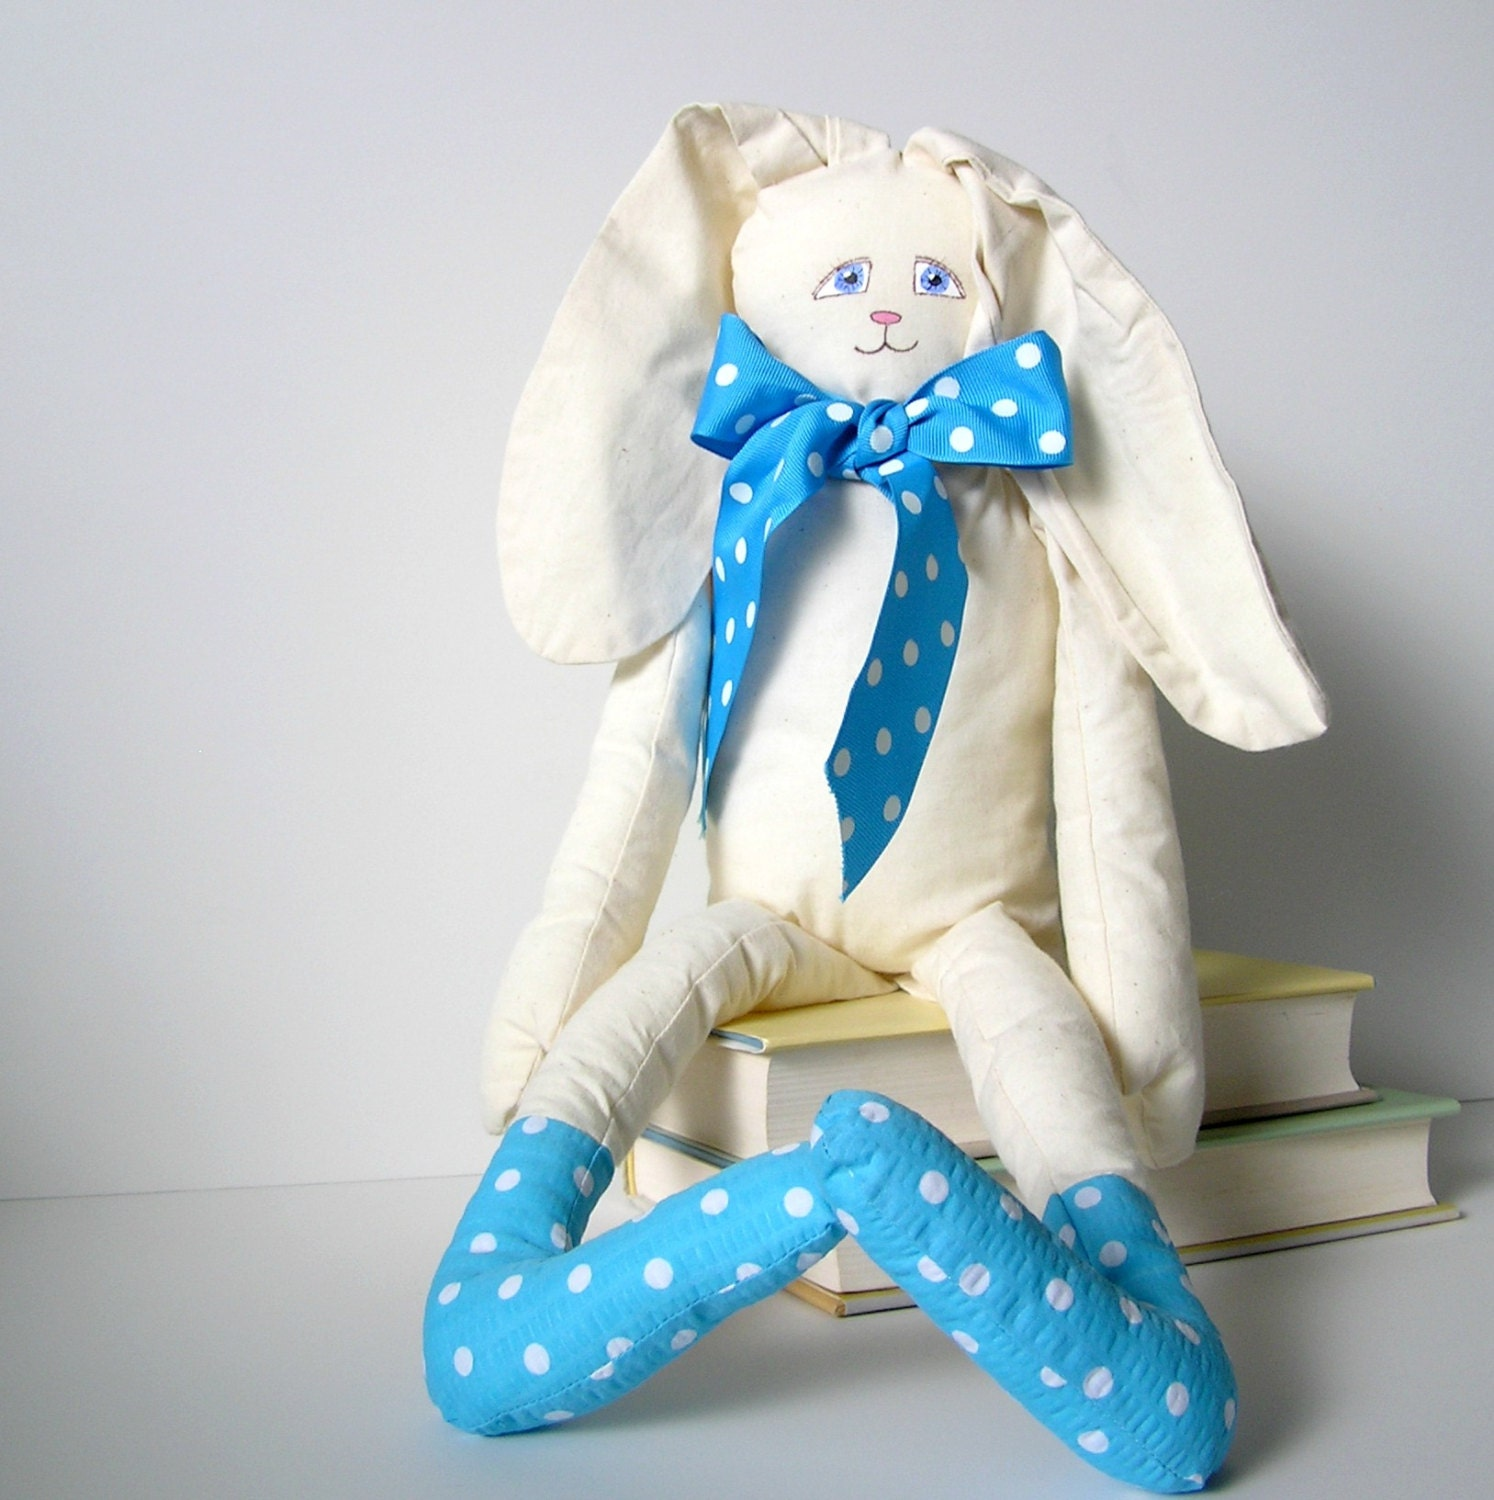 Handmade Bunny Rabbit with hand painted face - OurPicketFence